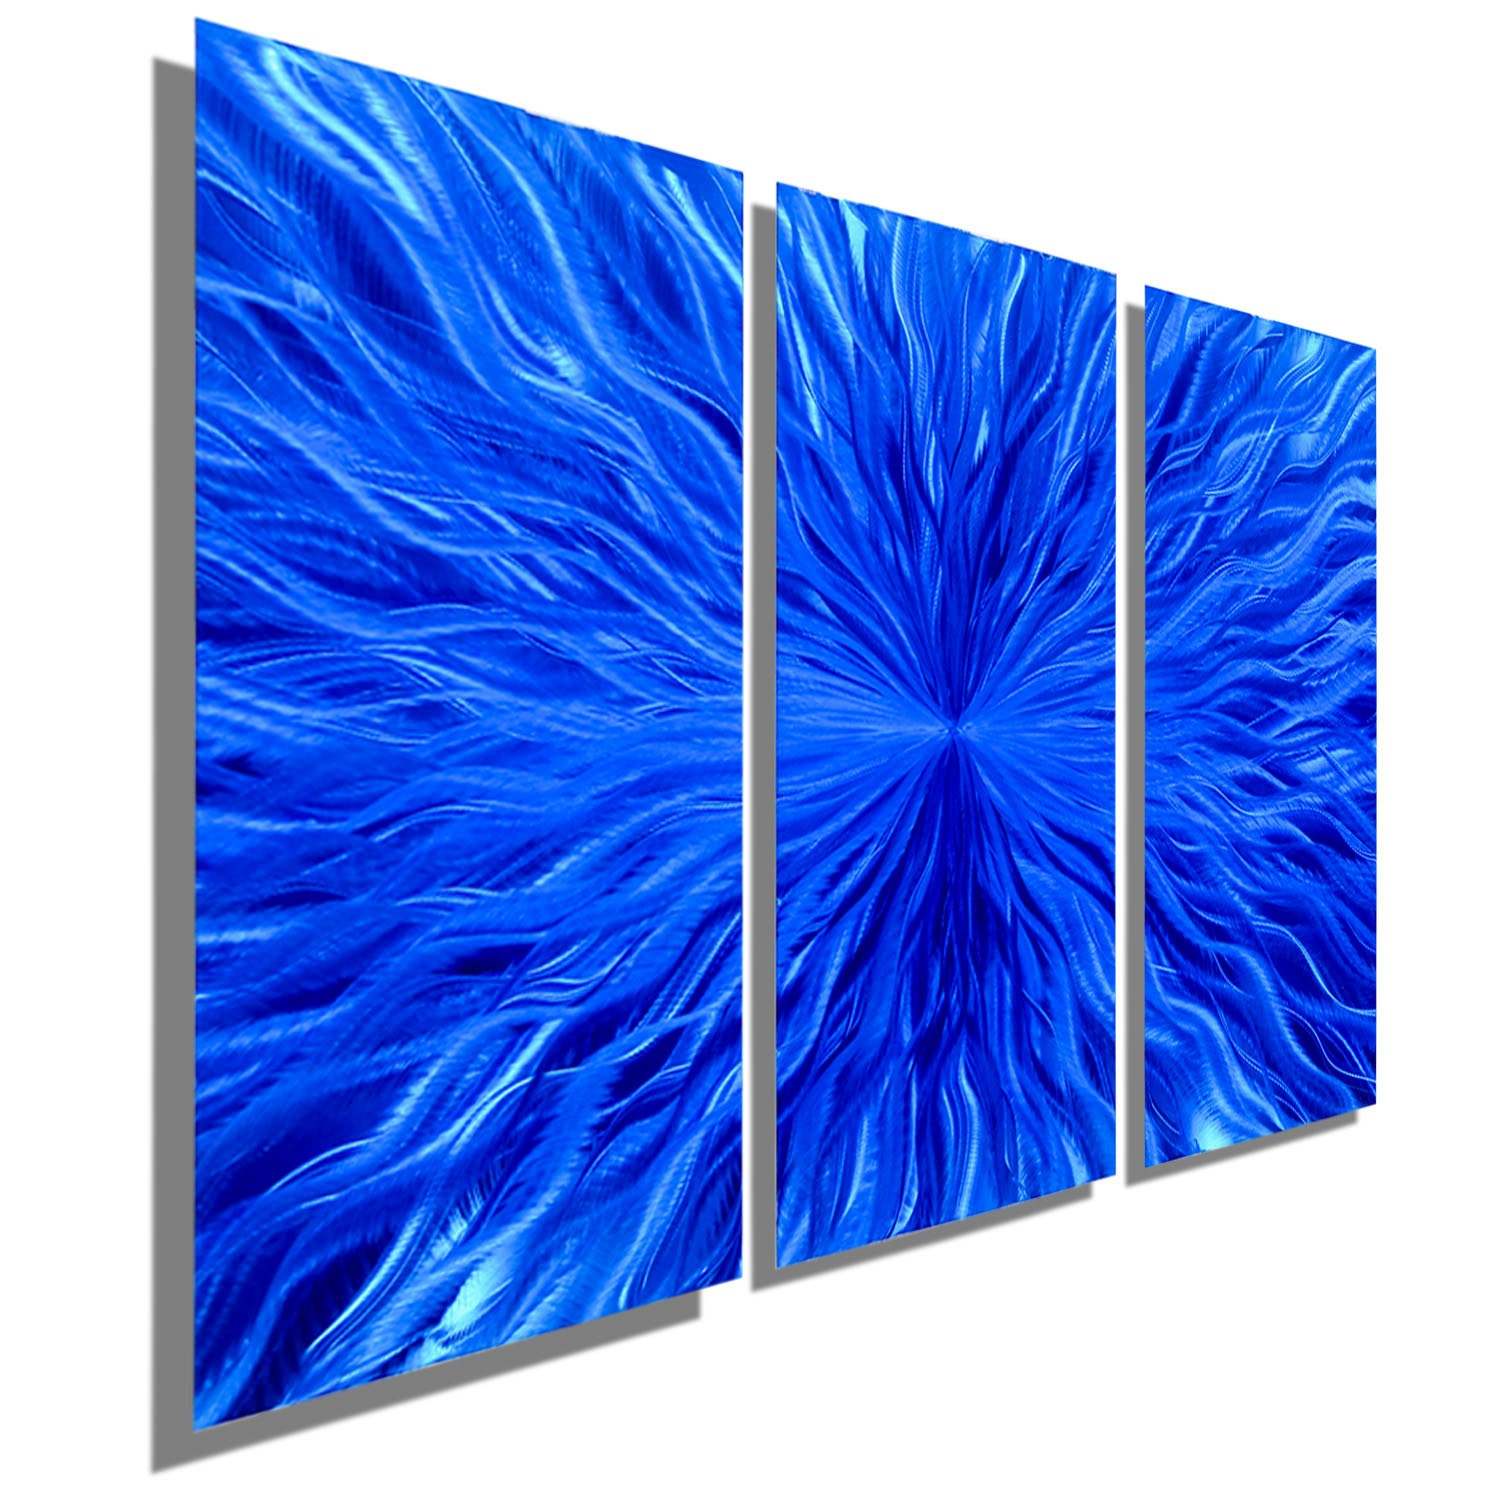 Blue Metal Wall Art Amusing Multi Panel Contemporary Metal Wall Decor In Blue Modern Design Ideas